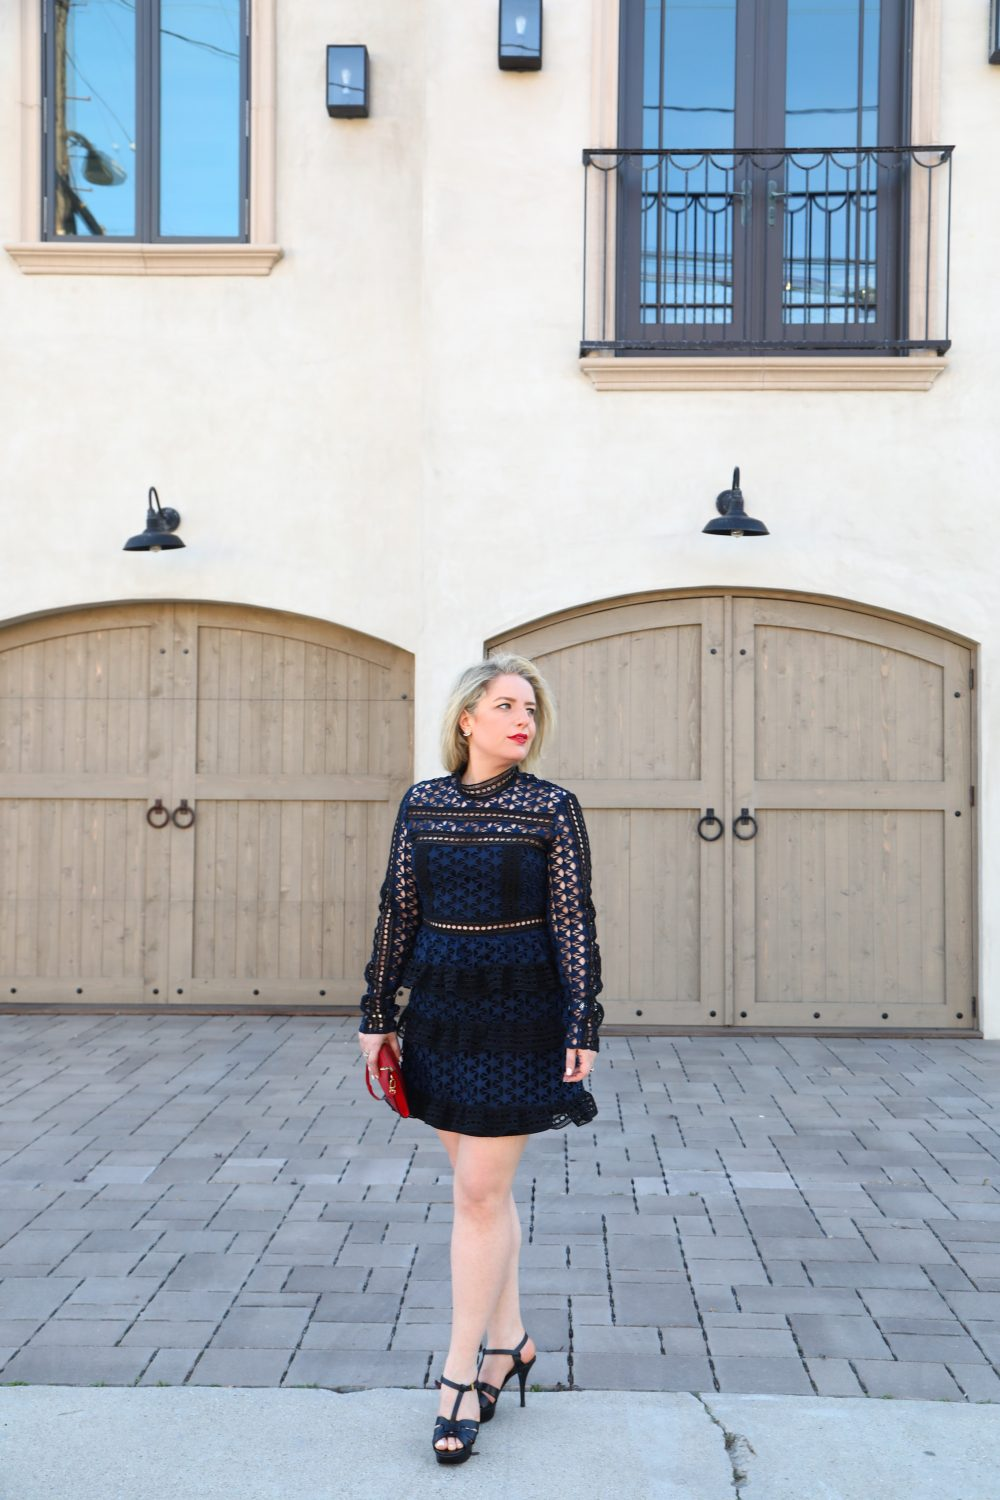 The Perfect Self Portrait Dress by Liz in Los Angeles, Los Angeles Lifestyle Blogger